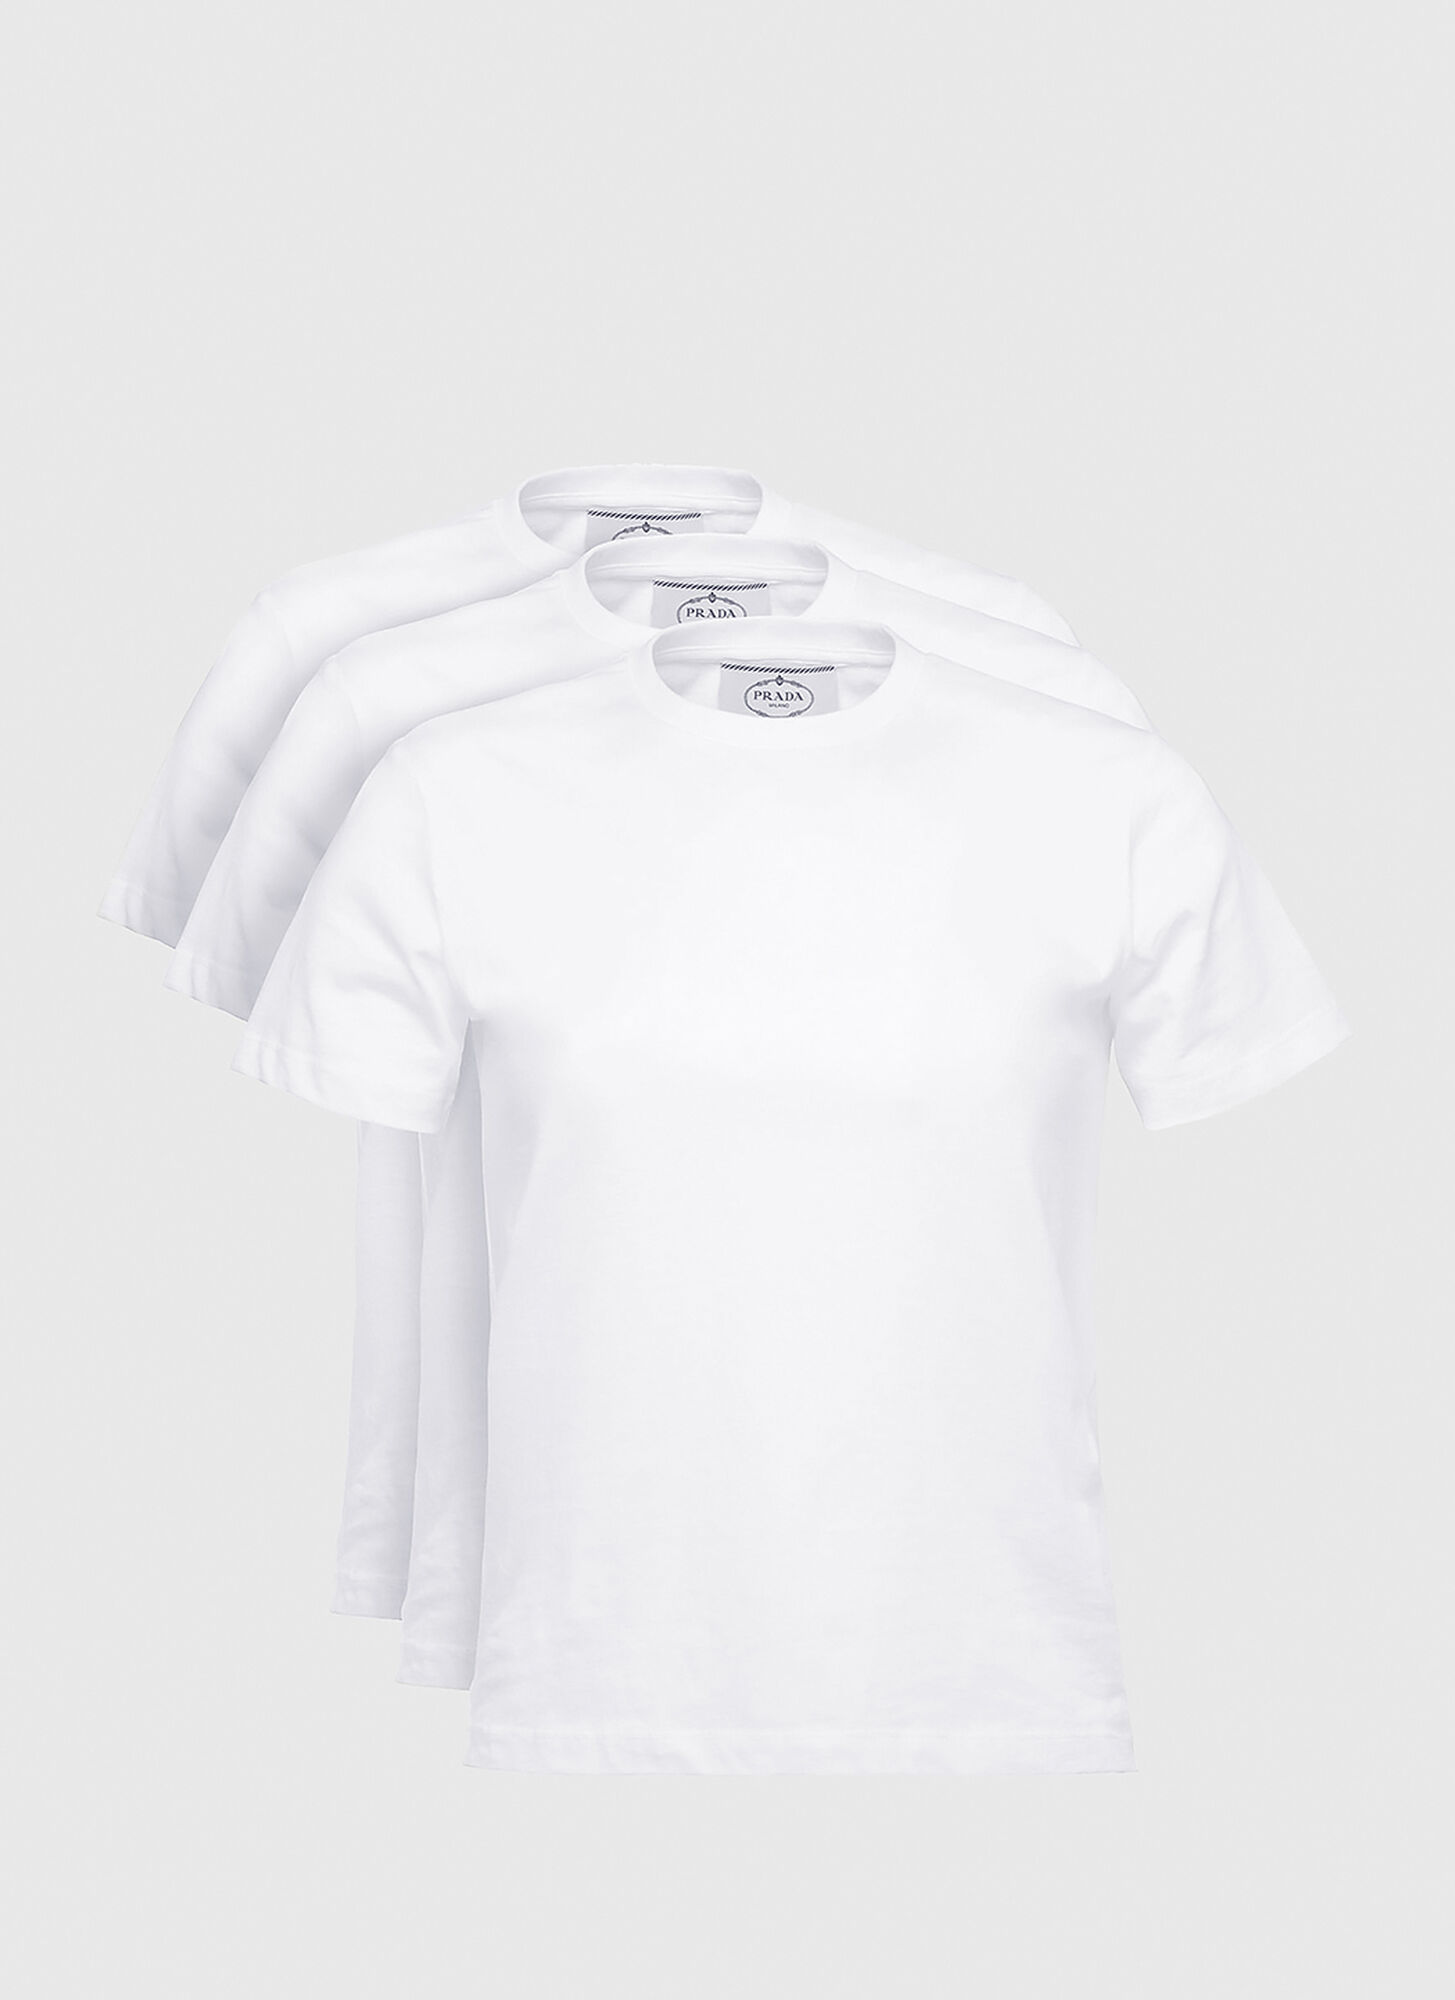 Prada Set of Three Jersey T-shirts in White